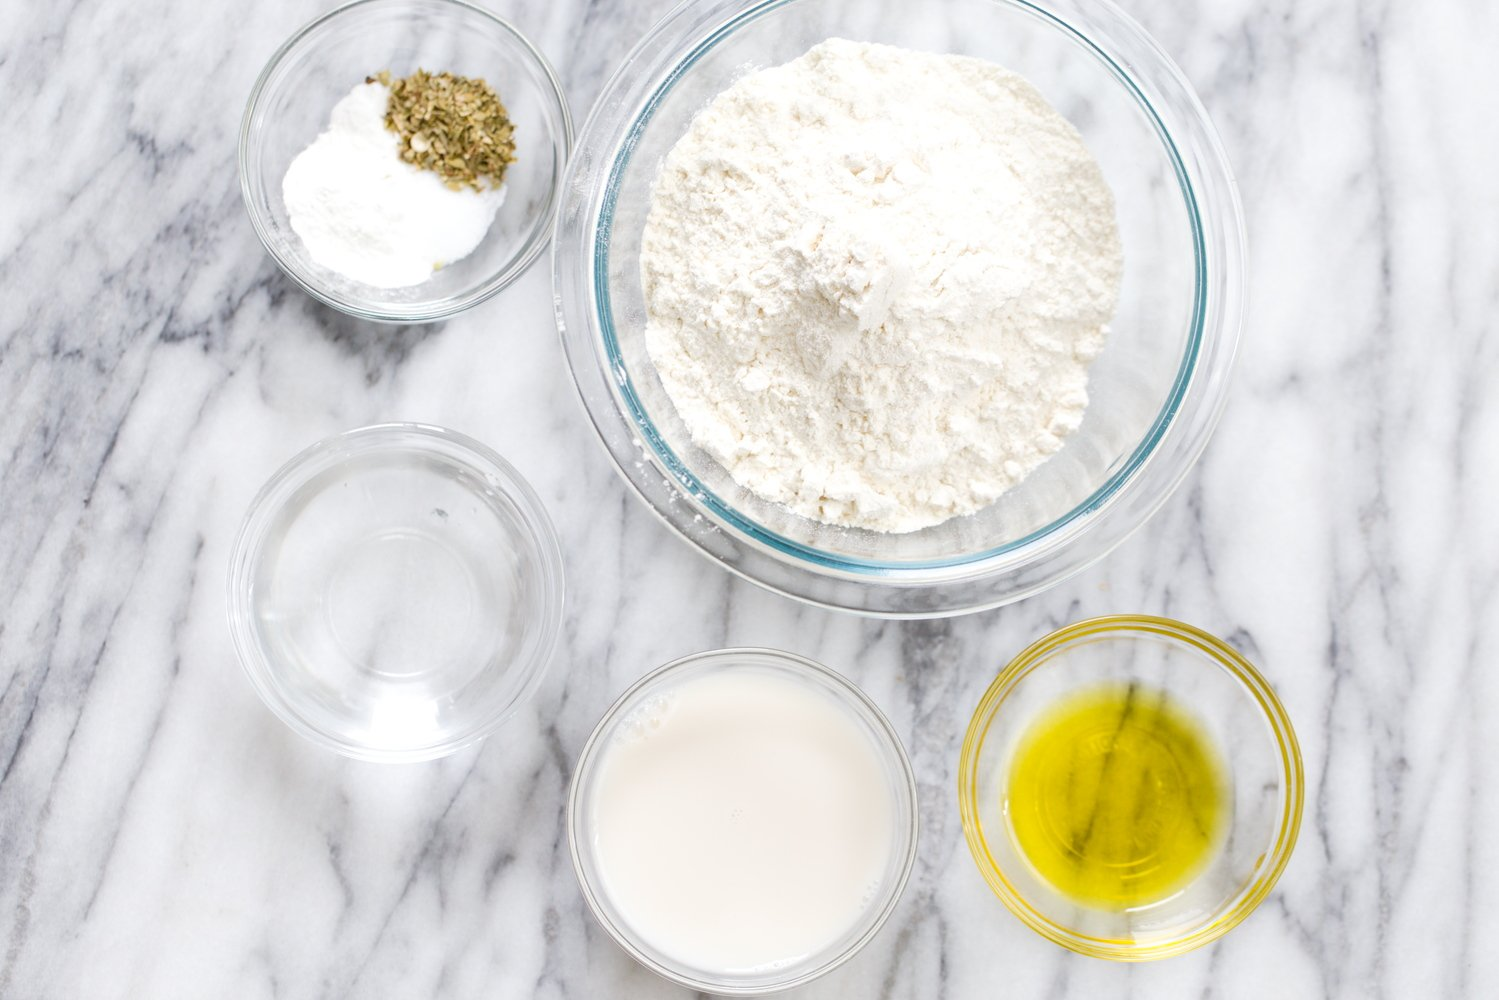 overhead shot of ingredients used for making vegan yeast-free pizza dough